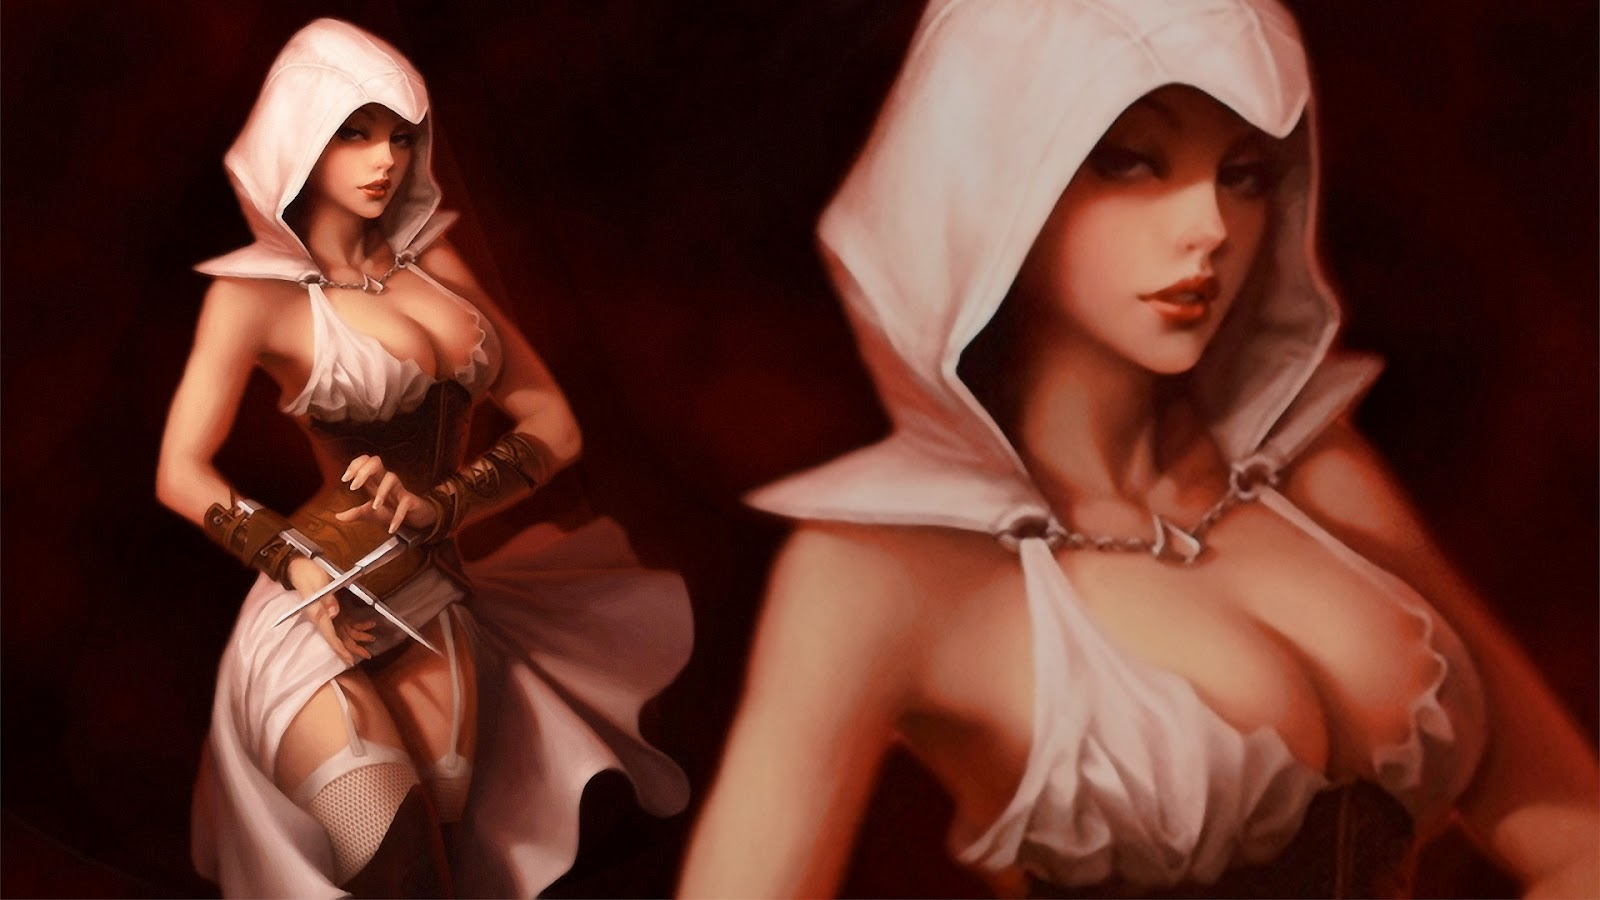 Assassin's creed naked girl hentia images